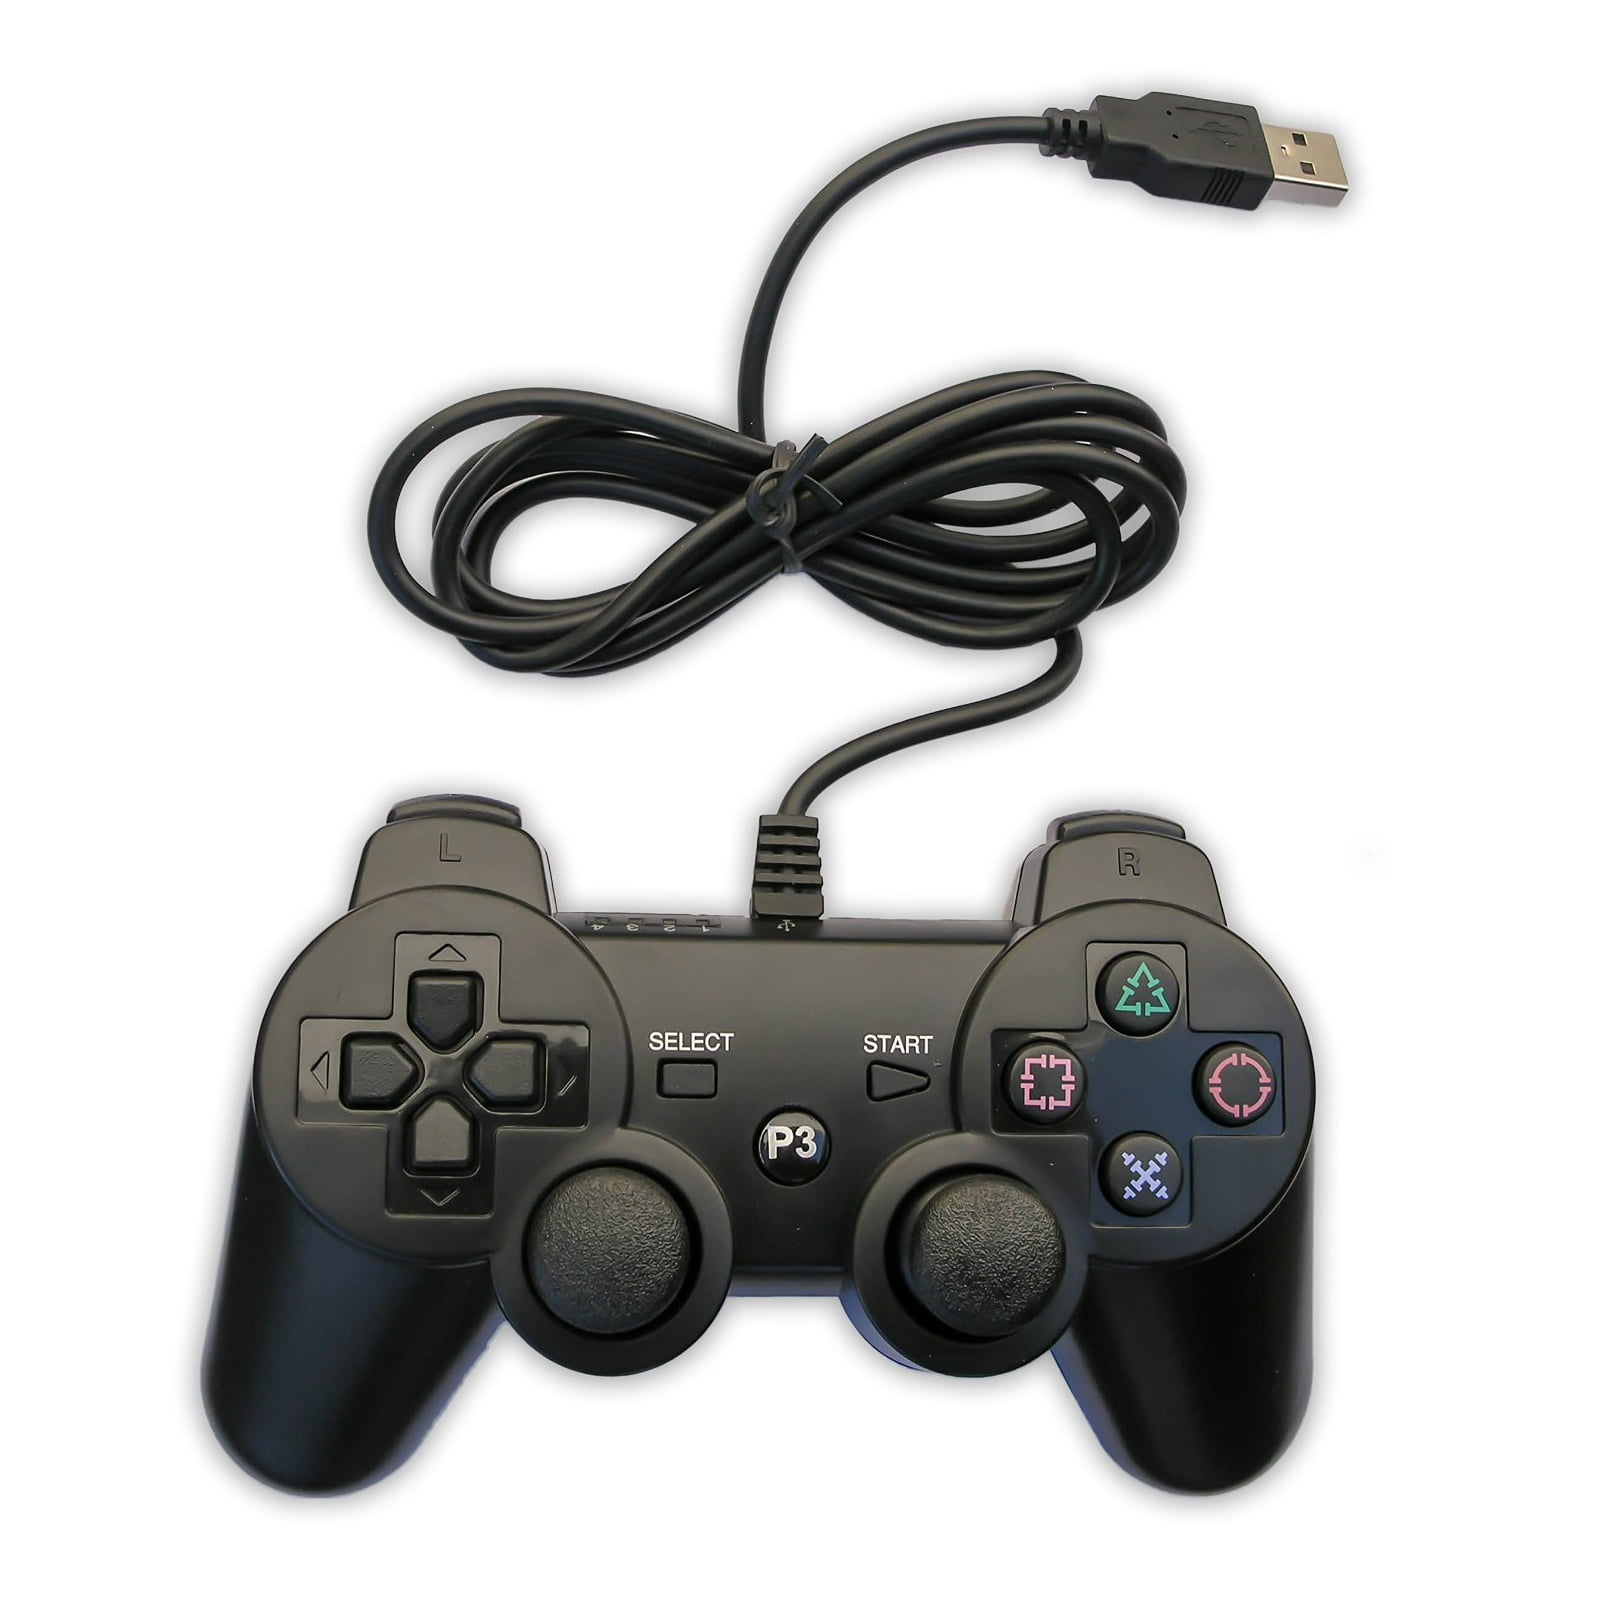 Tomee Mgear Wired Controller for Playstation 3, 9255038M - Walmart.com